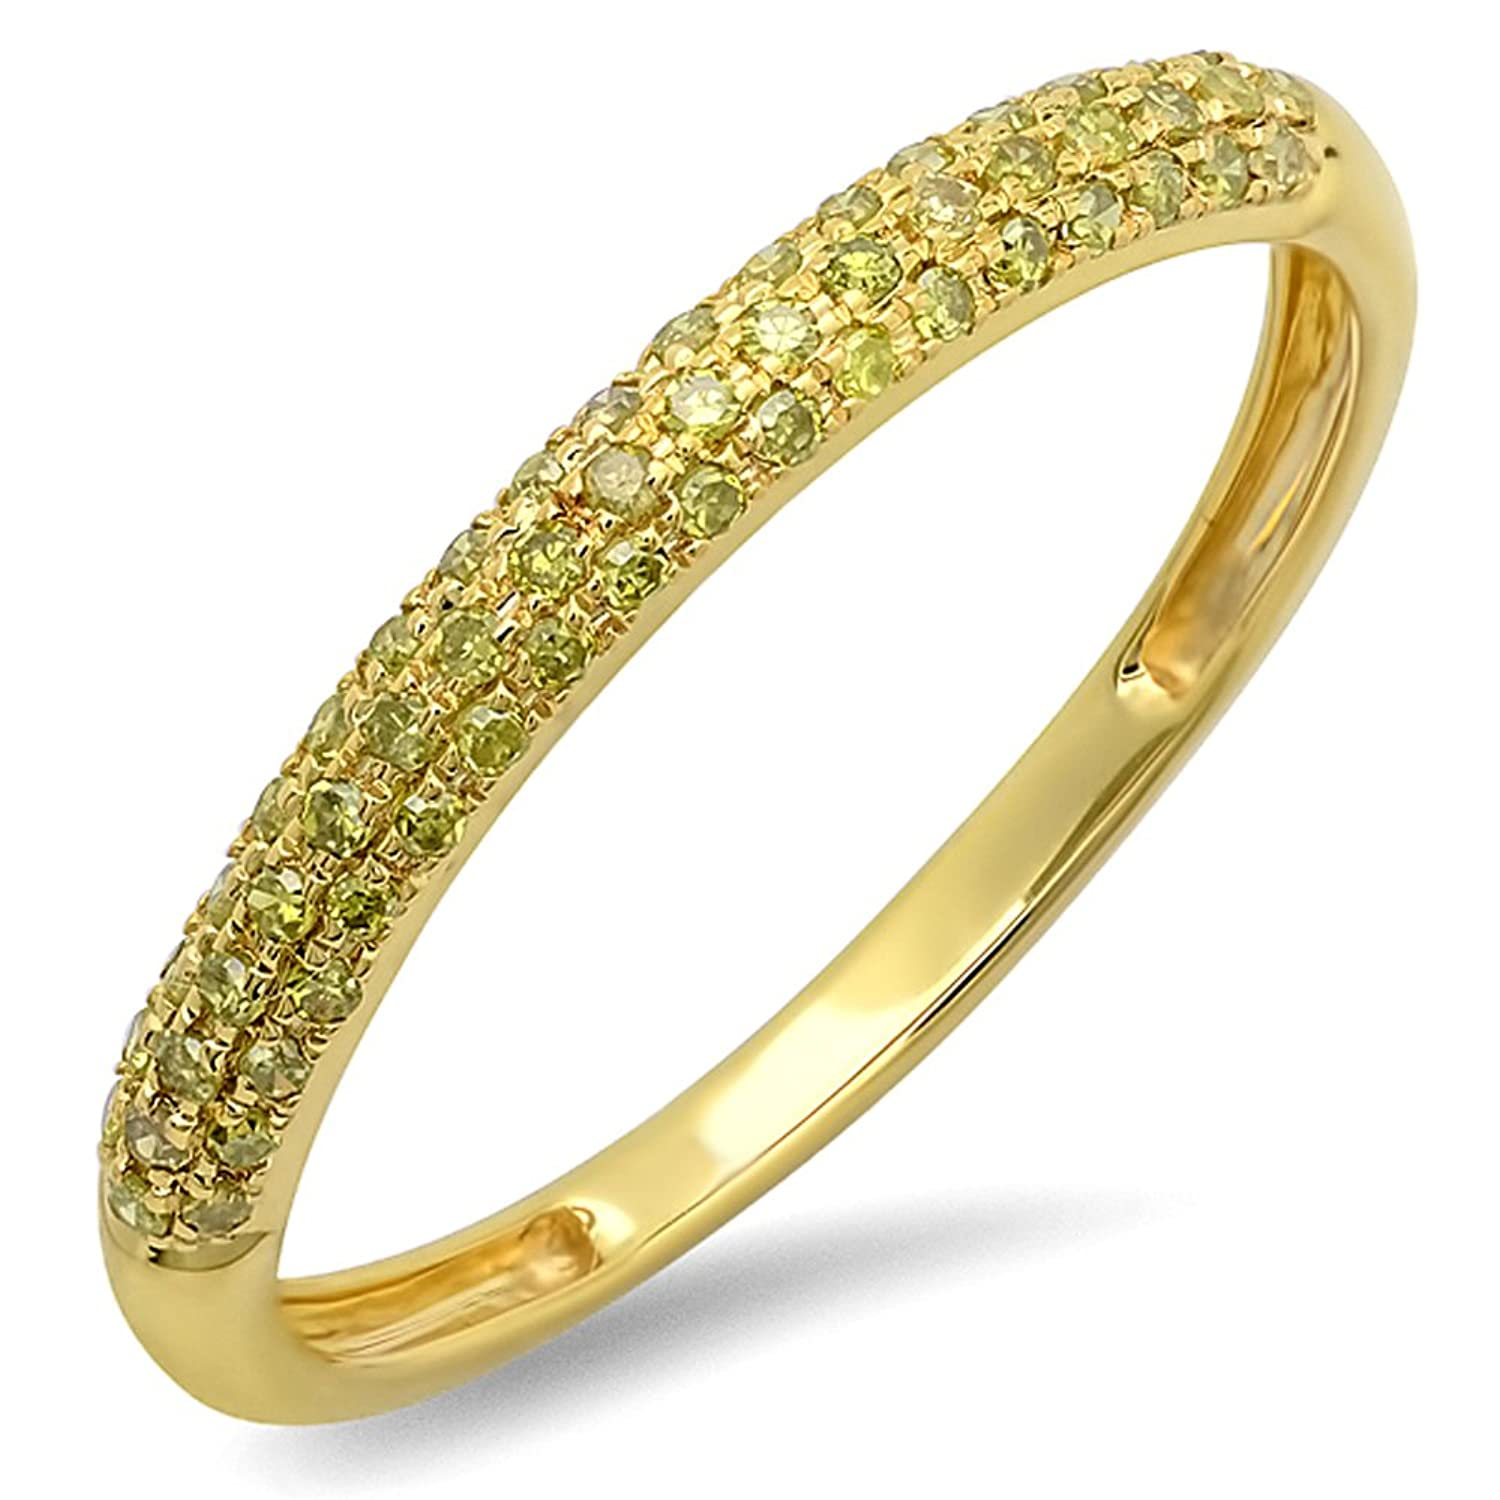 0.25 Carat (ctw) 14k Yellow Gold Round Yellow Diamond Ladies Pave Anniversary Band Stackable Ring 1/4 CT